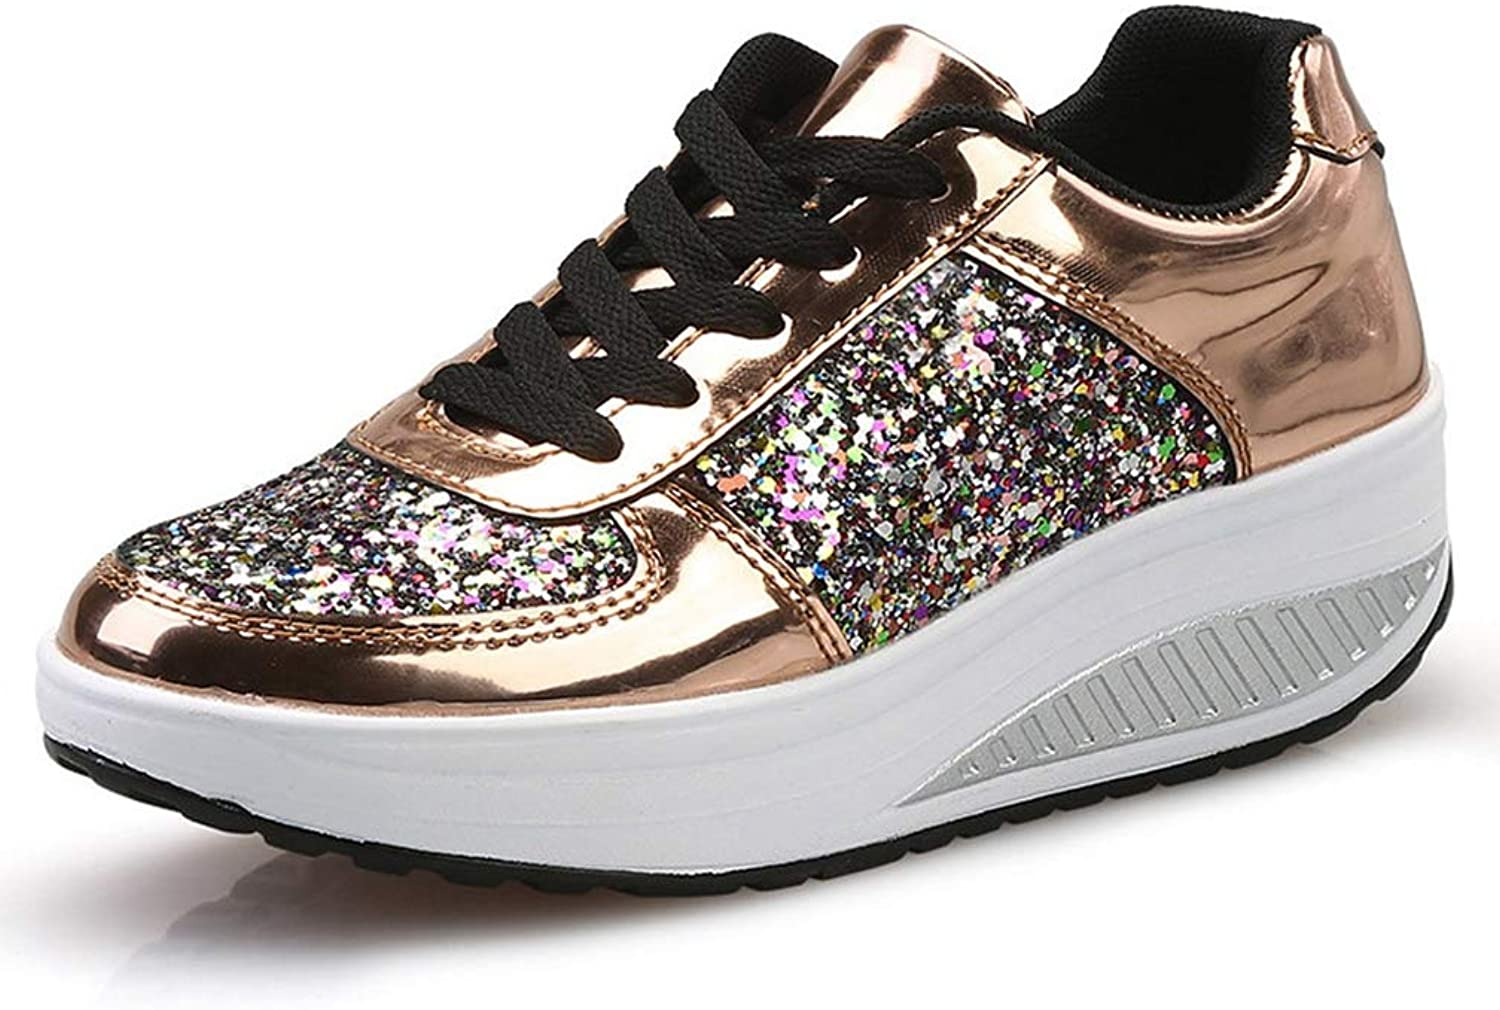 Hoxekle Woman Sequins Bling Fashion Waterproof Wedges Platform Sneakers Female PU Fashion Casual Cool Party shoes